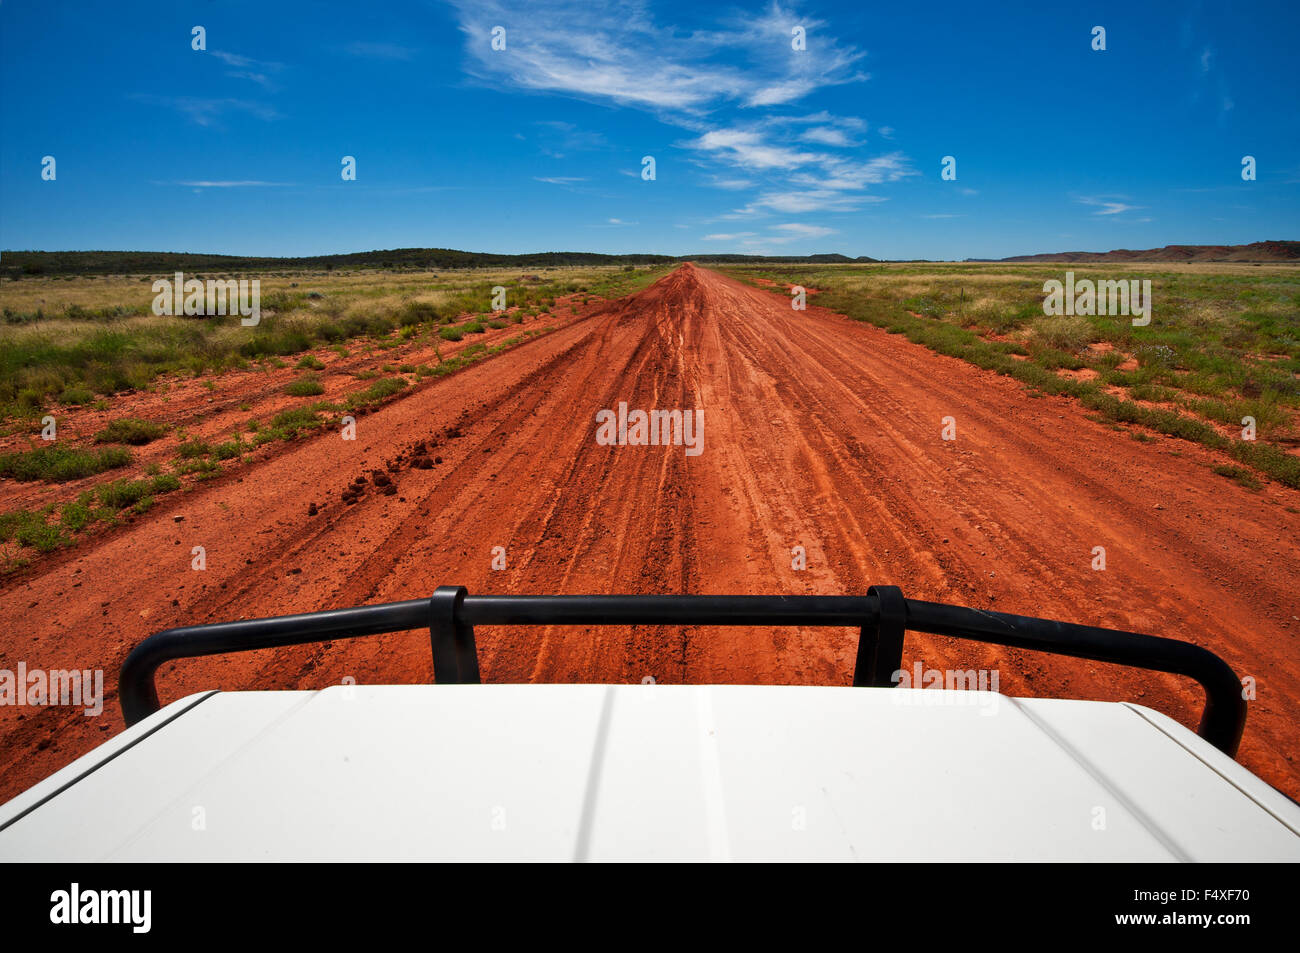 Red desert track in Central Australia. - Stock Image